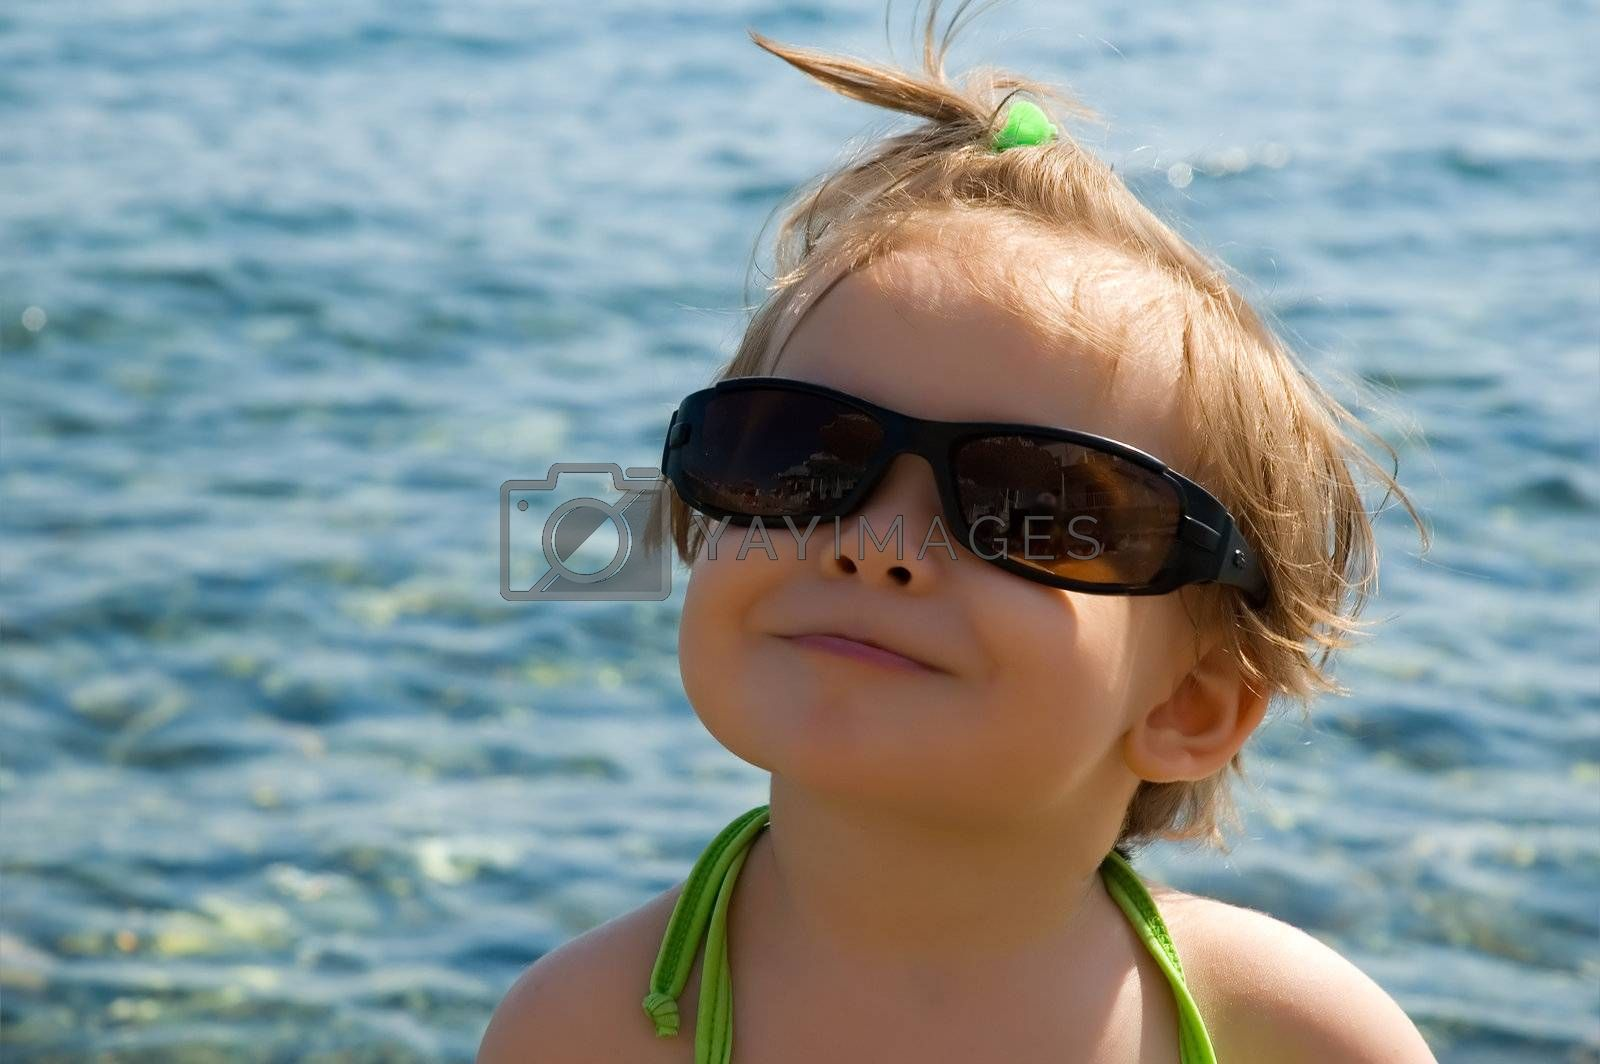 A very cute little girl wearing her mom's sun glasses at the beach